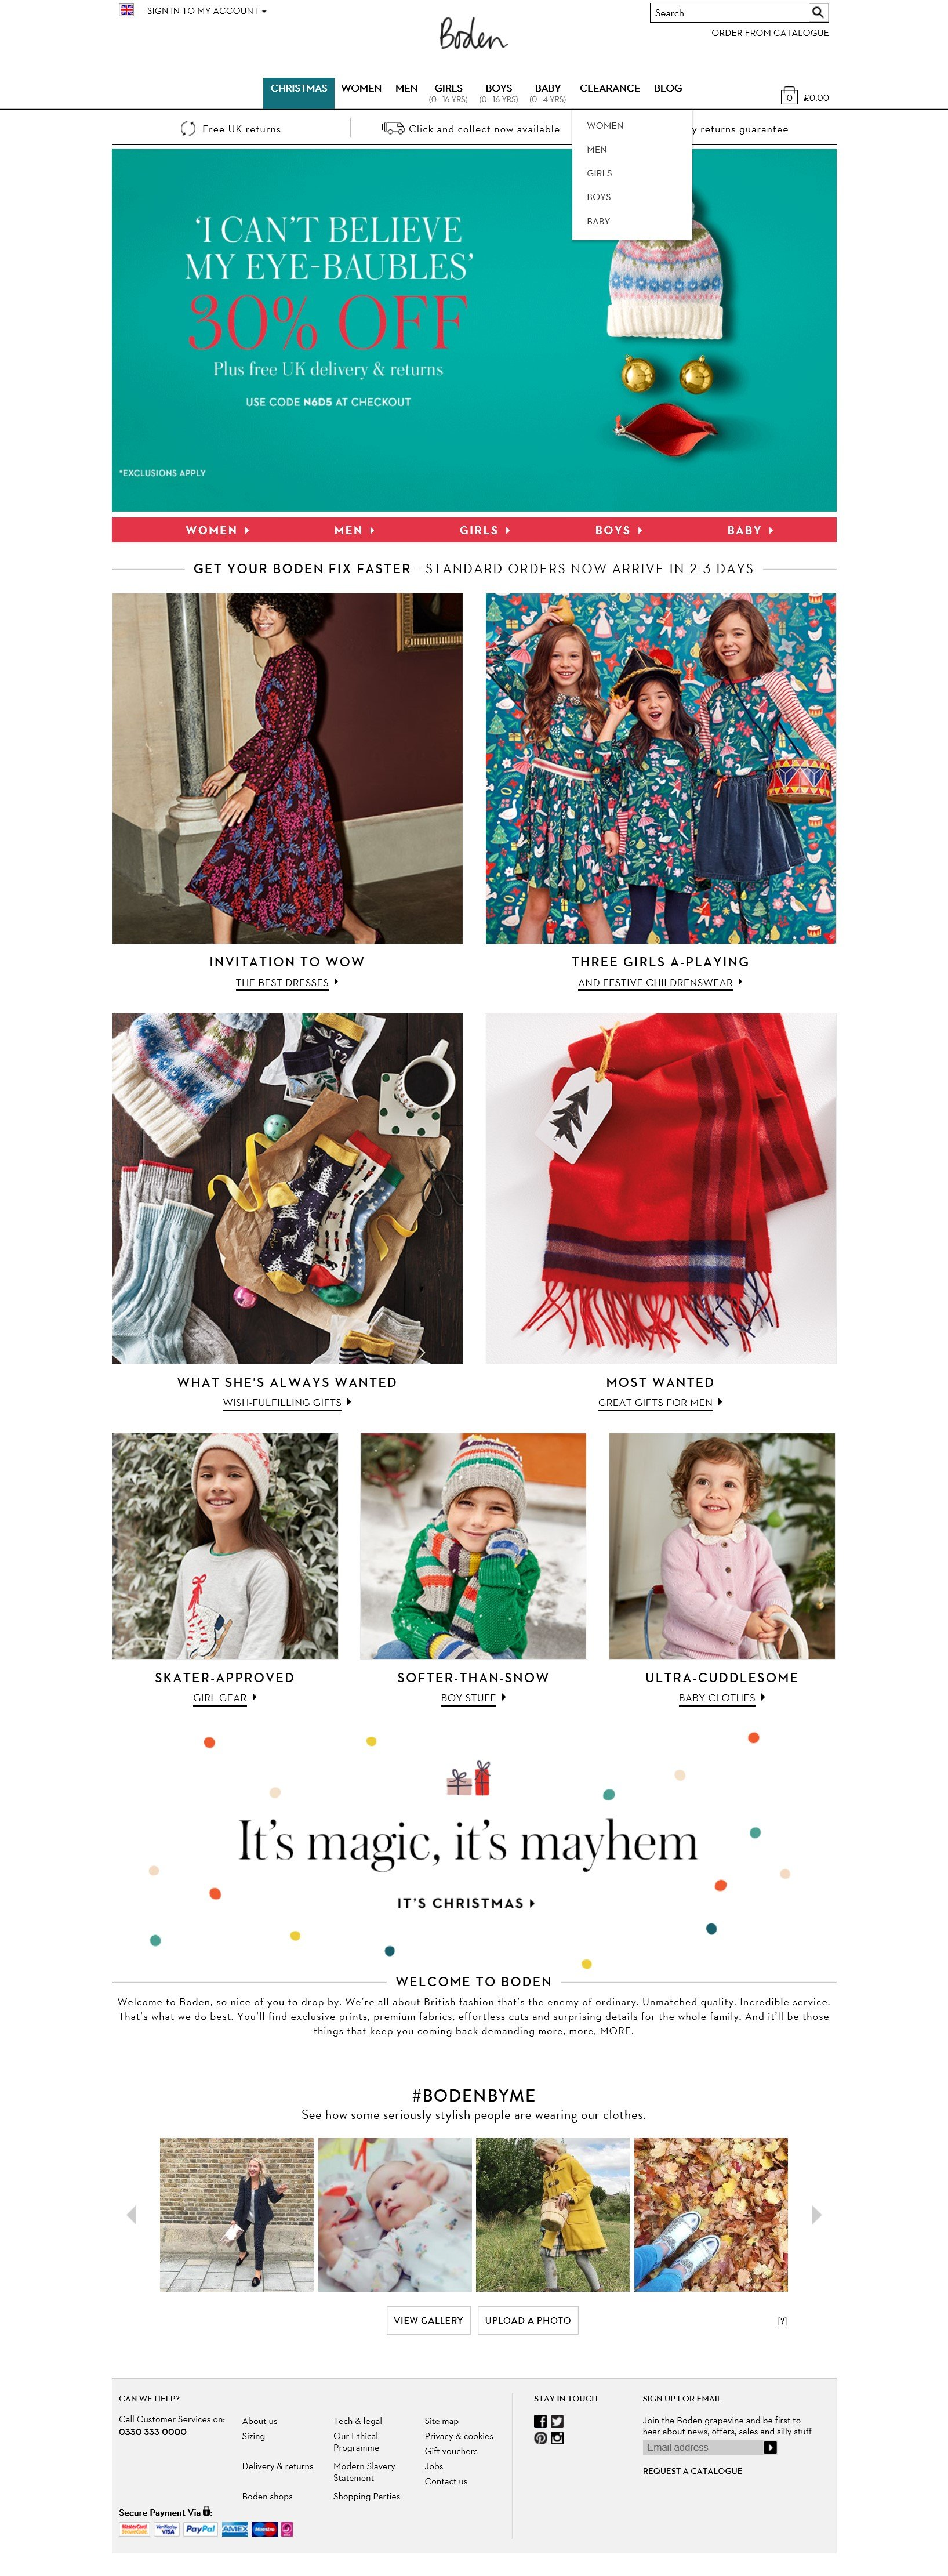 Boden is one of the most successful and fastest growing online clothing companies in the UK